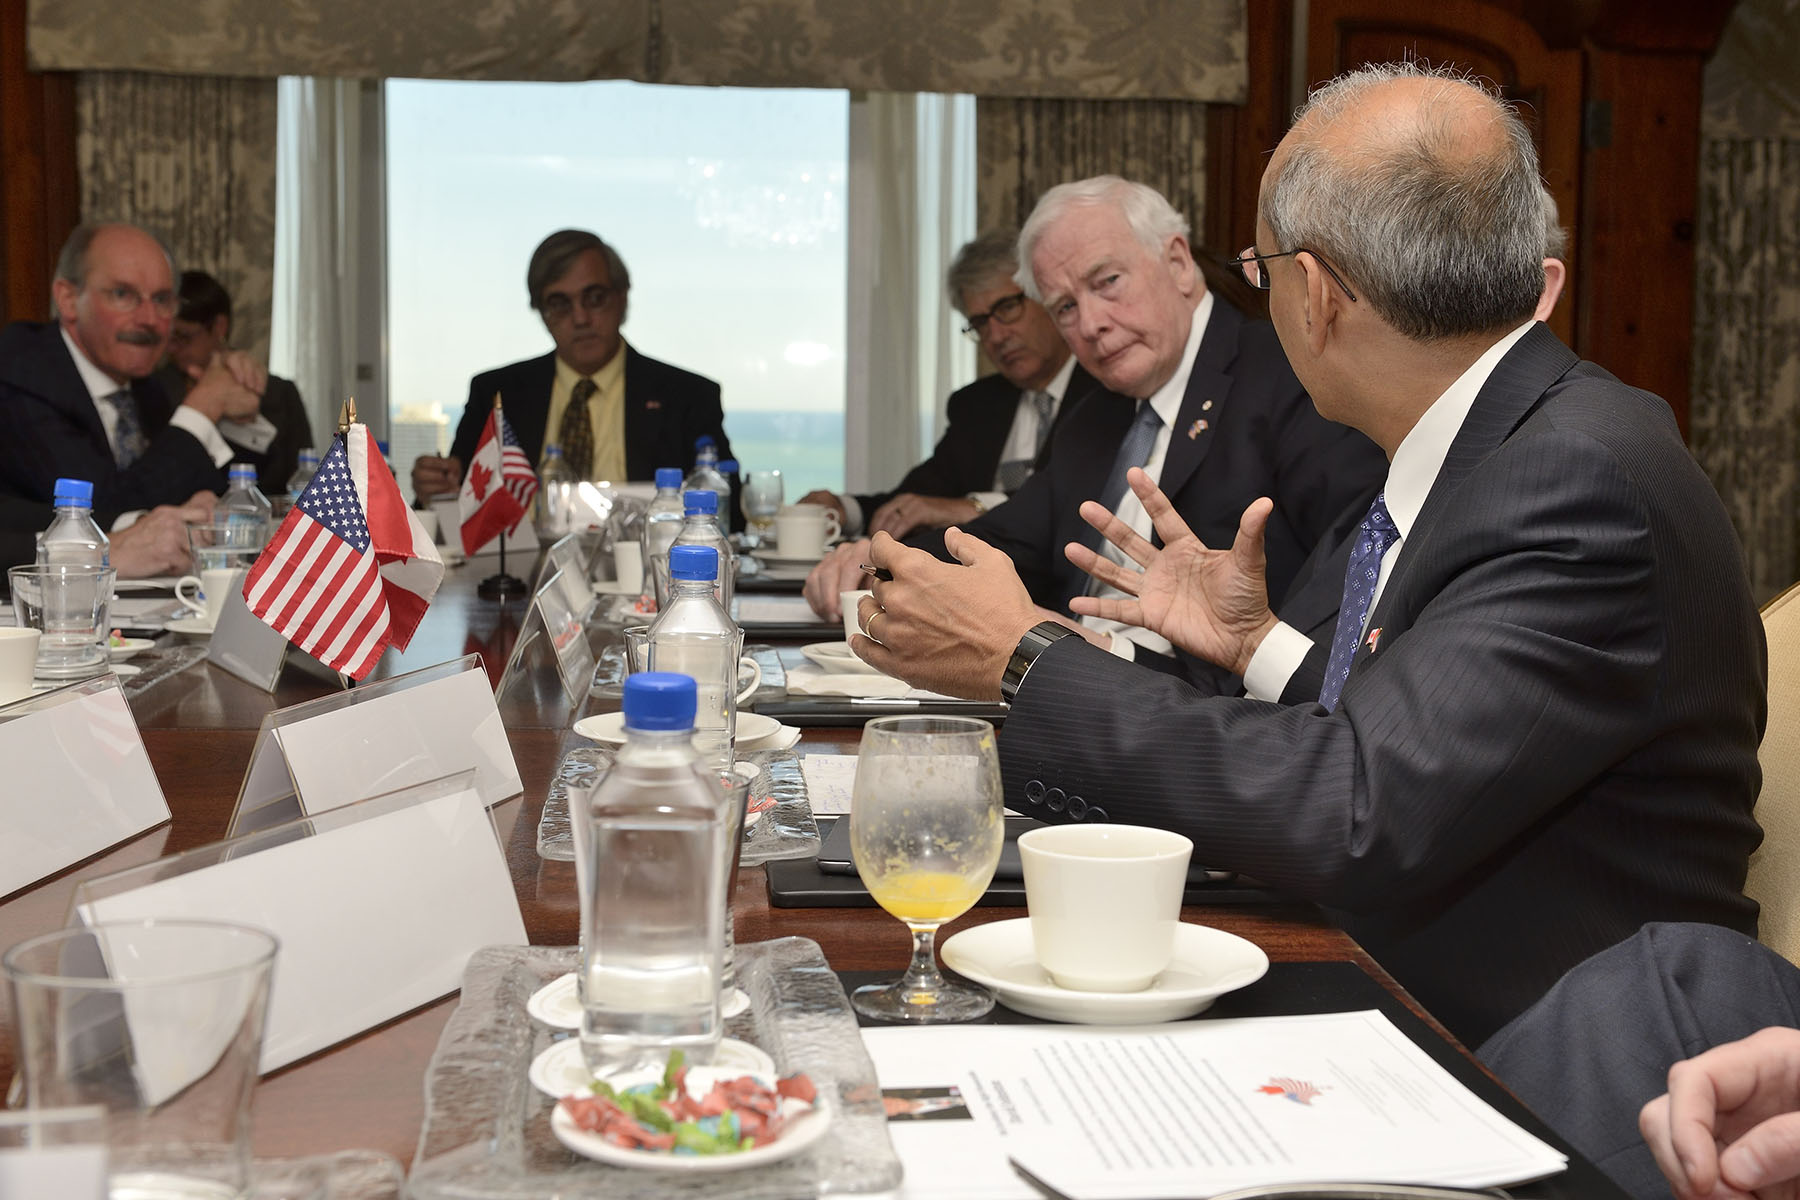 On April 27, 2015, Governor General Johnston met with university leaders from leading research institutions based in Illinois, Missouri and Wisconsin, along with their counterparts from Canadian institutions, to discuss academic co-operation and joint innovation research between leading Canadian and U.S. institutions. The round-table discussion took place in Chicago, Illinois.